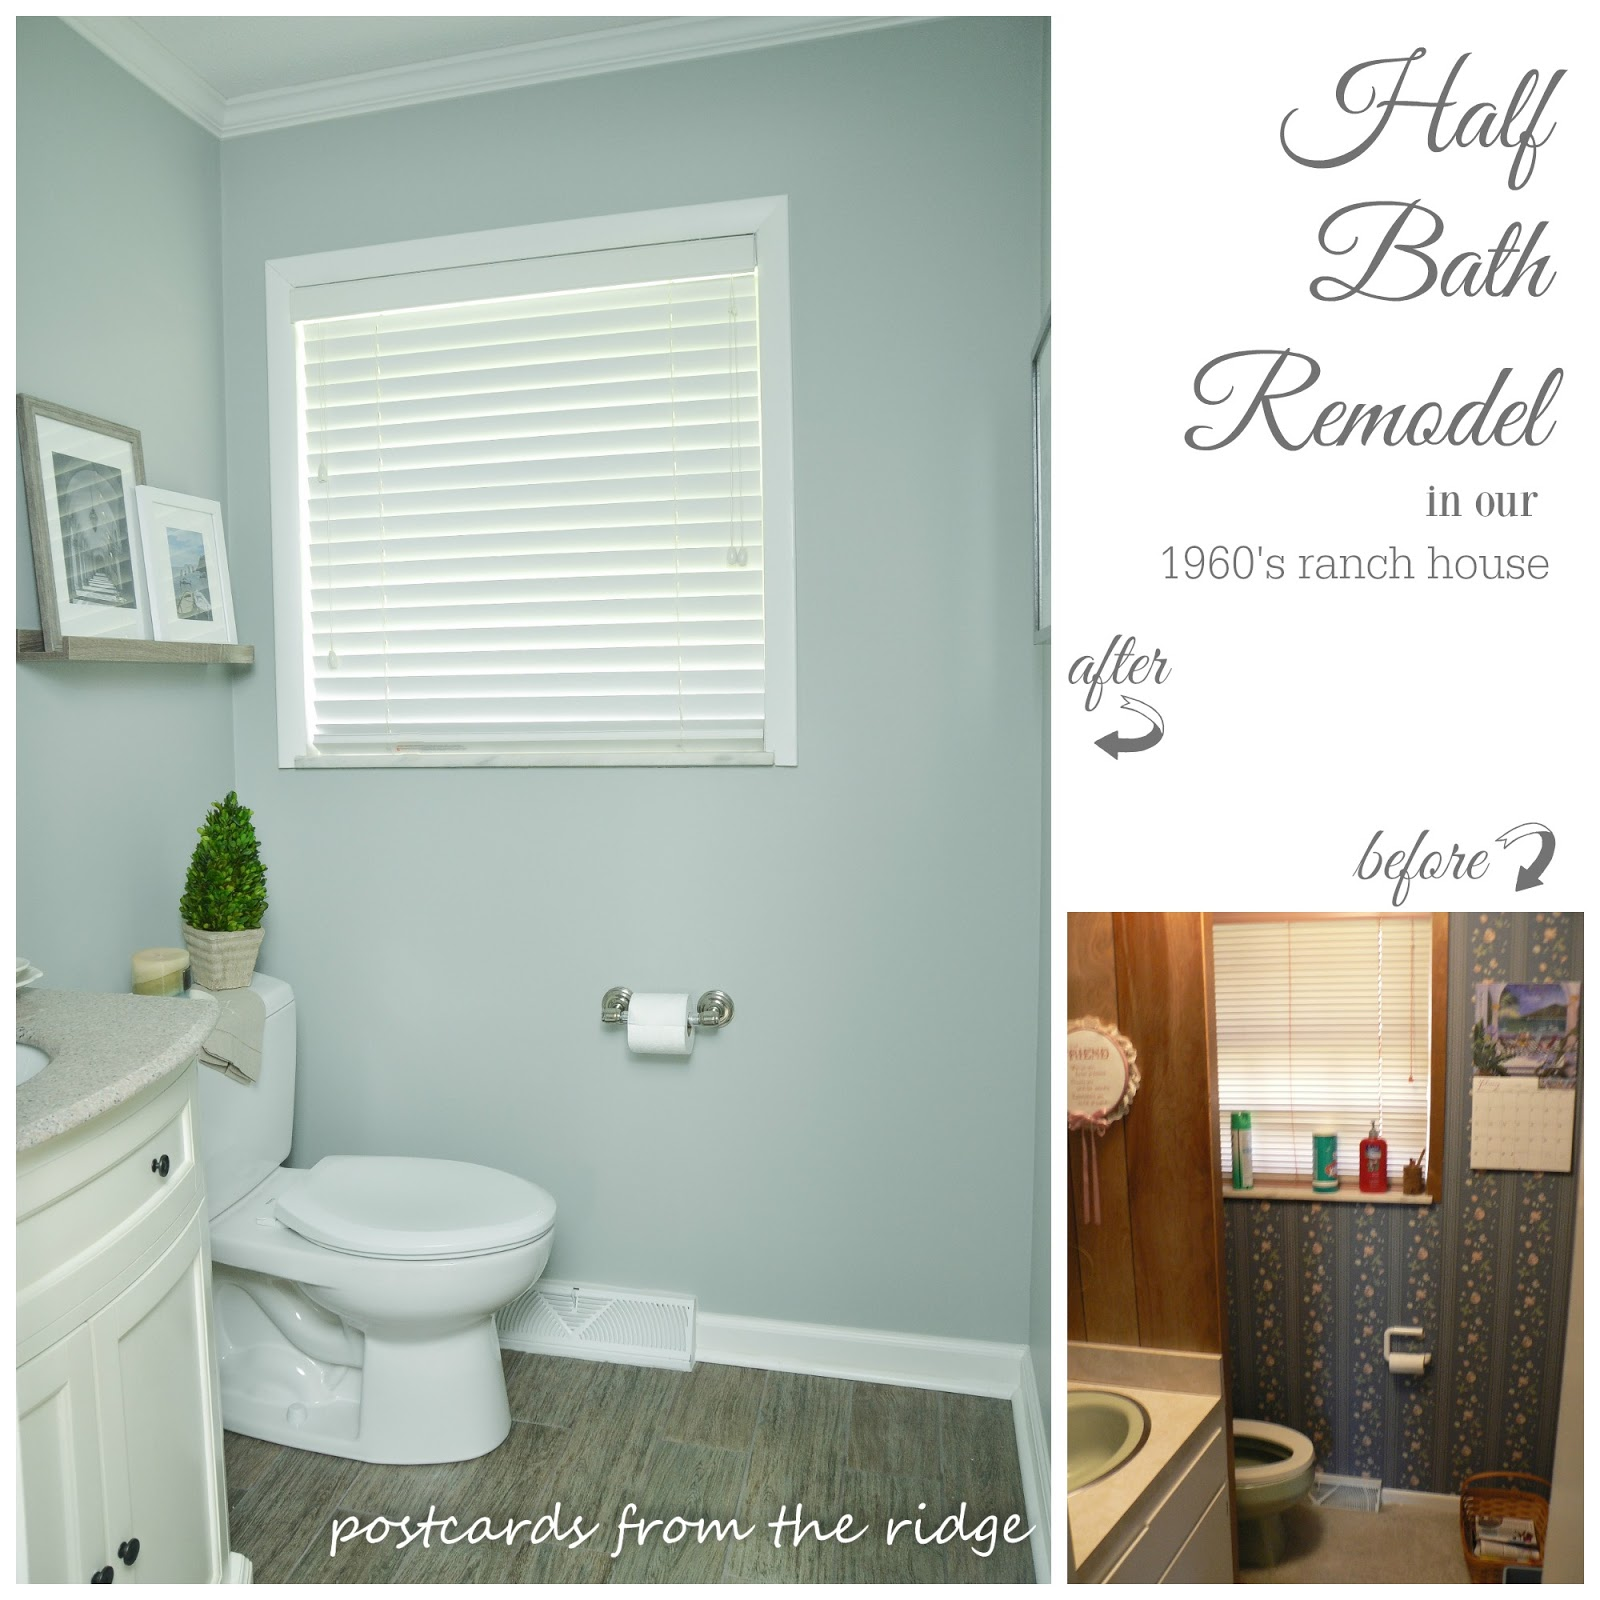 Hall Bath Renovation Reveal And Details Postcards From The Ridge - 1960 bathroom remodel